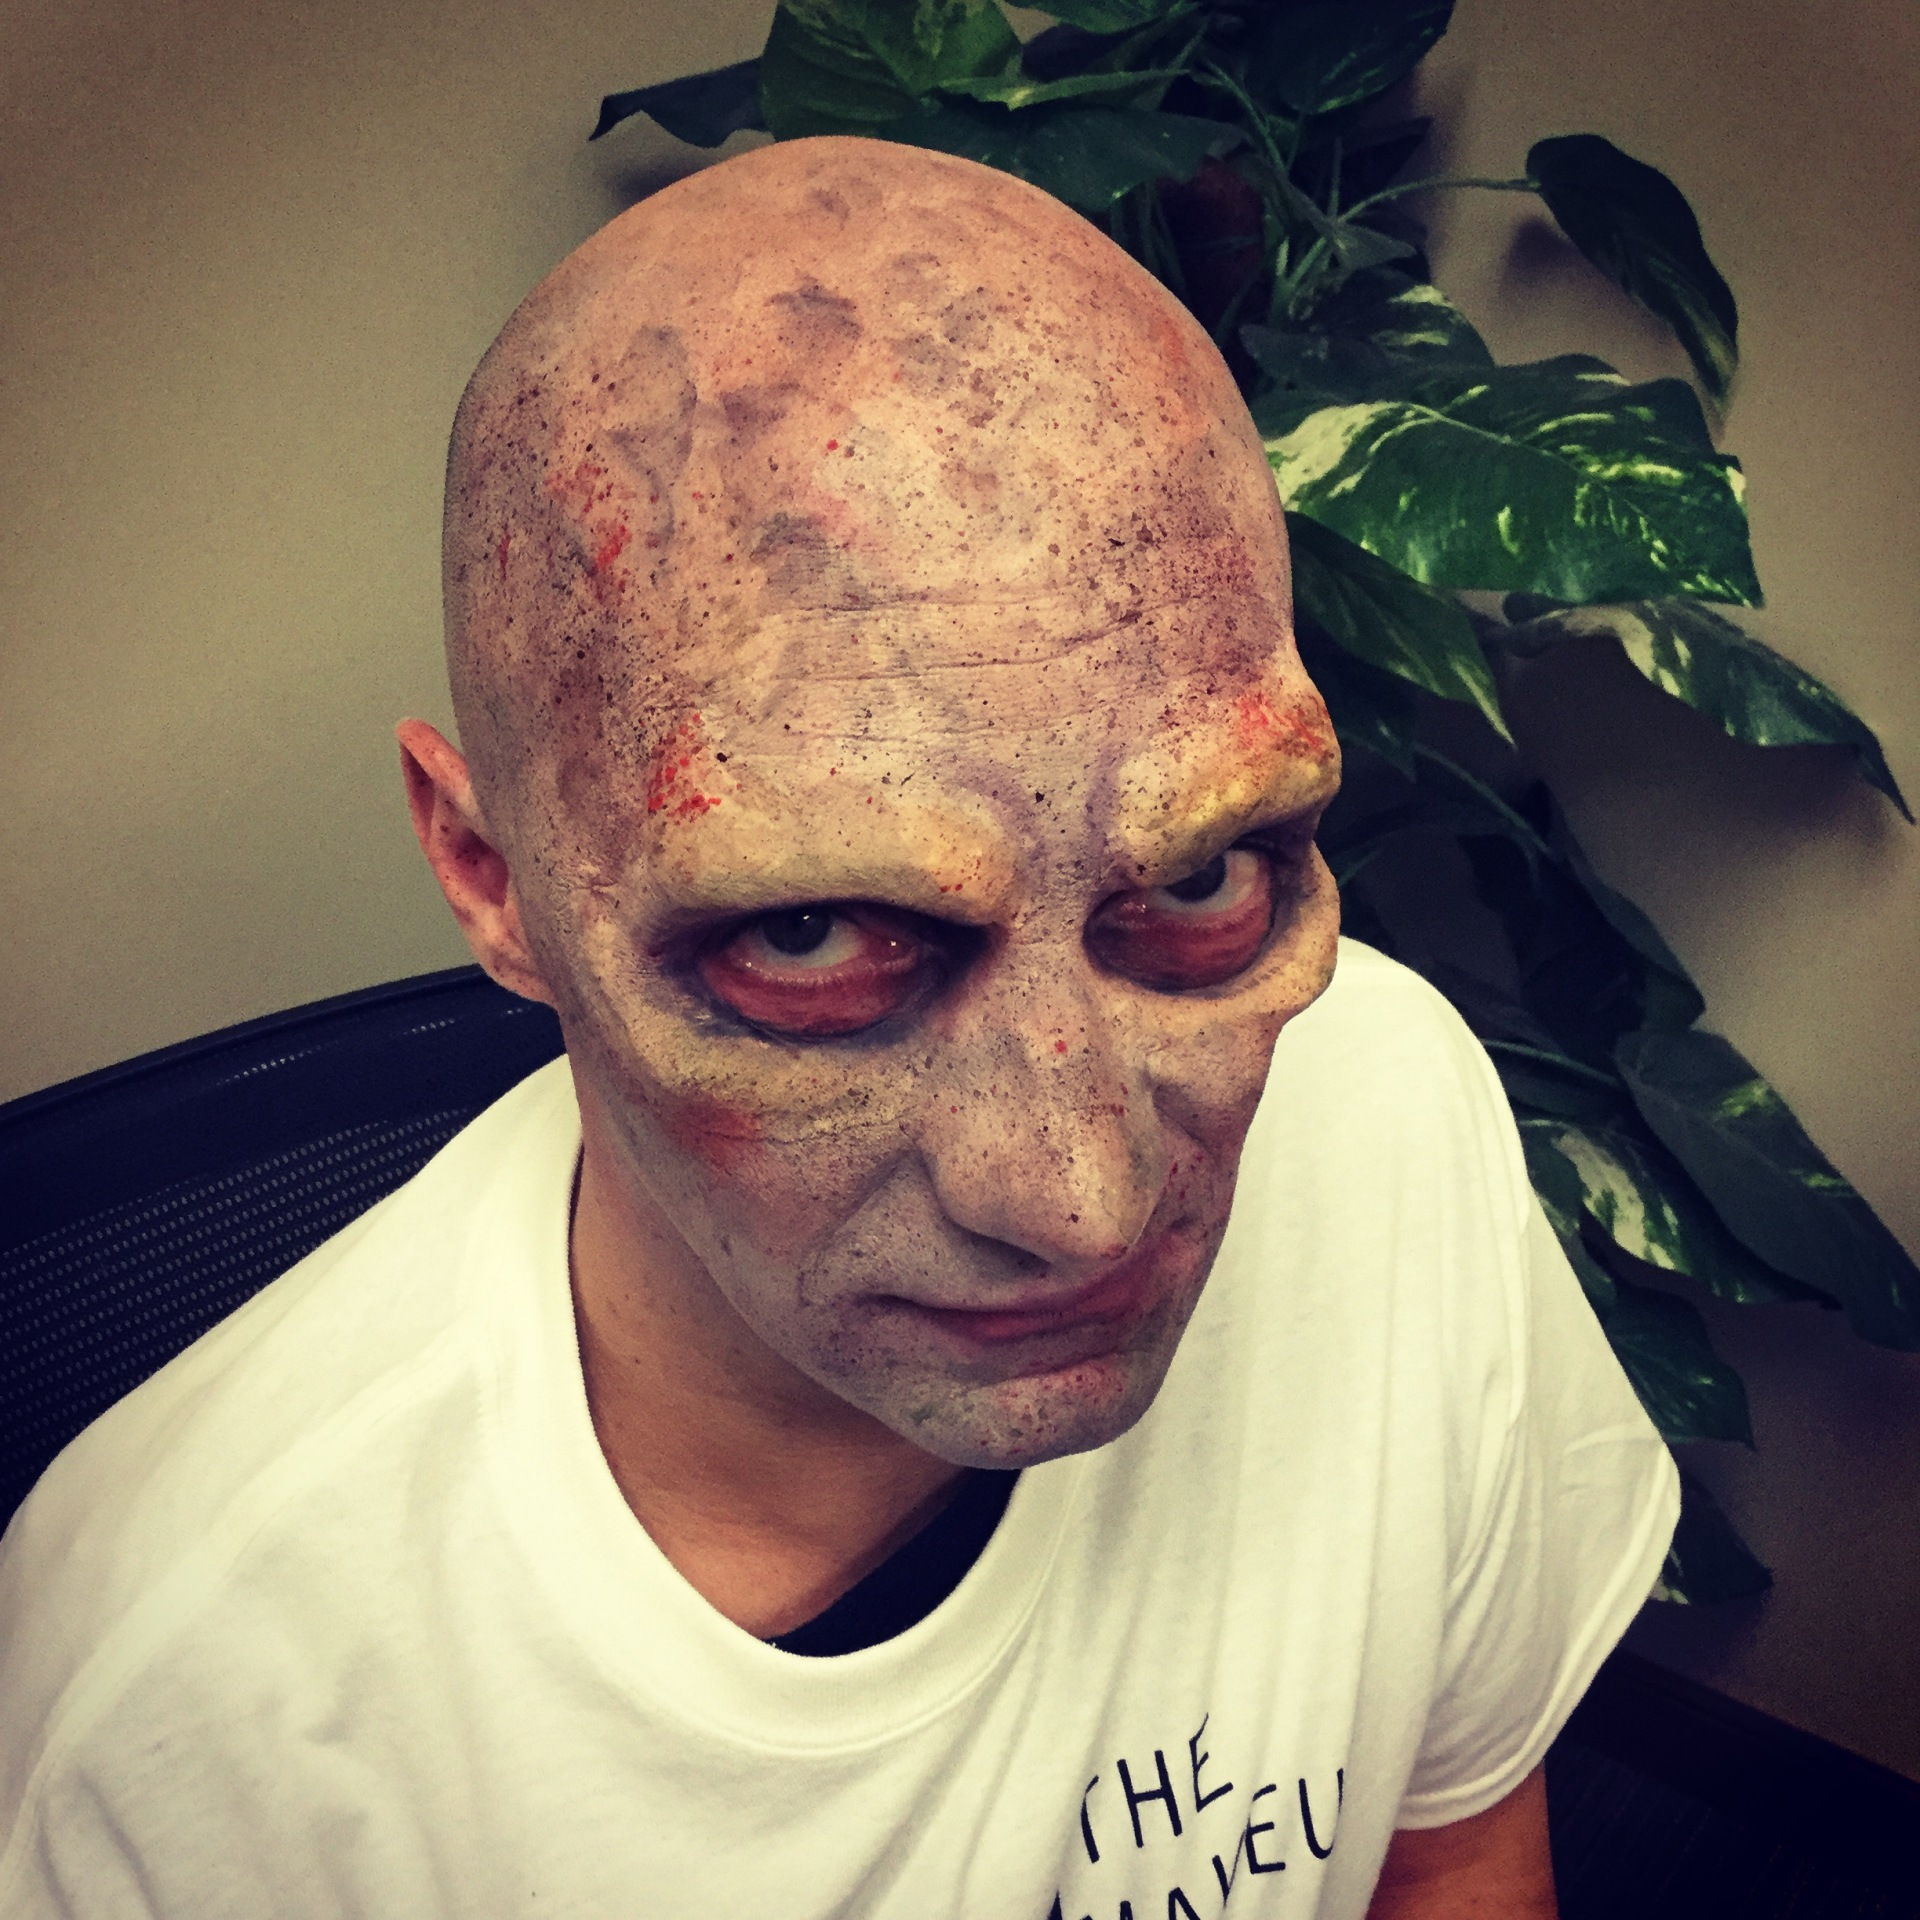 zombies, sfx makeup, special effects, blood effects